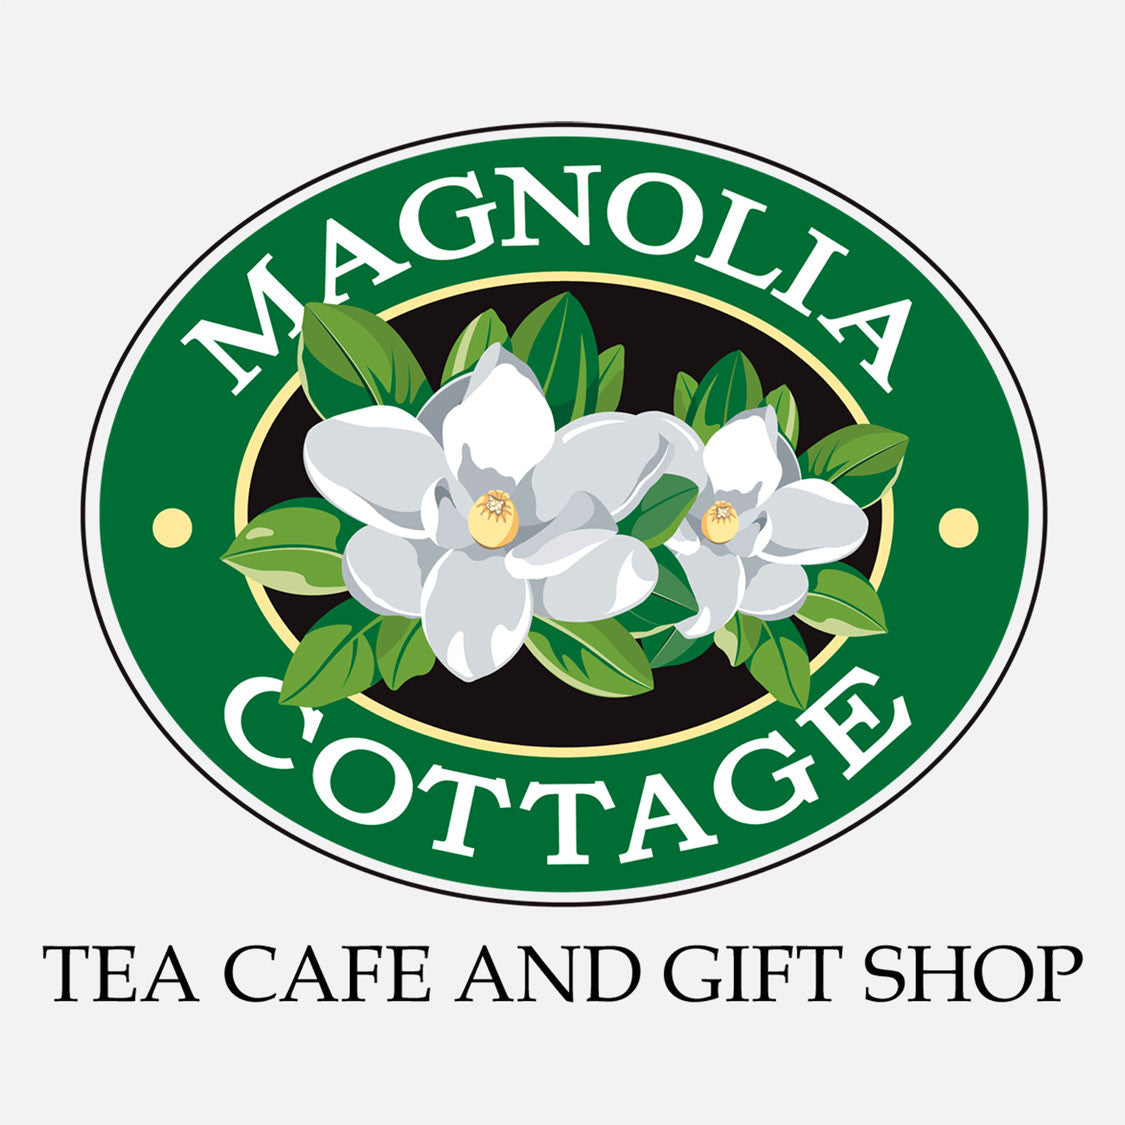 Magnolia Cottage logo, Eau Gallie, Florida. The logo is a graphic depiction of a trio of magnolias